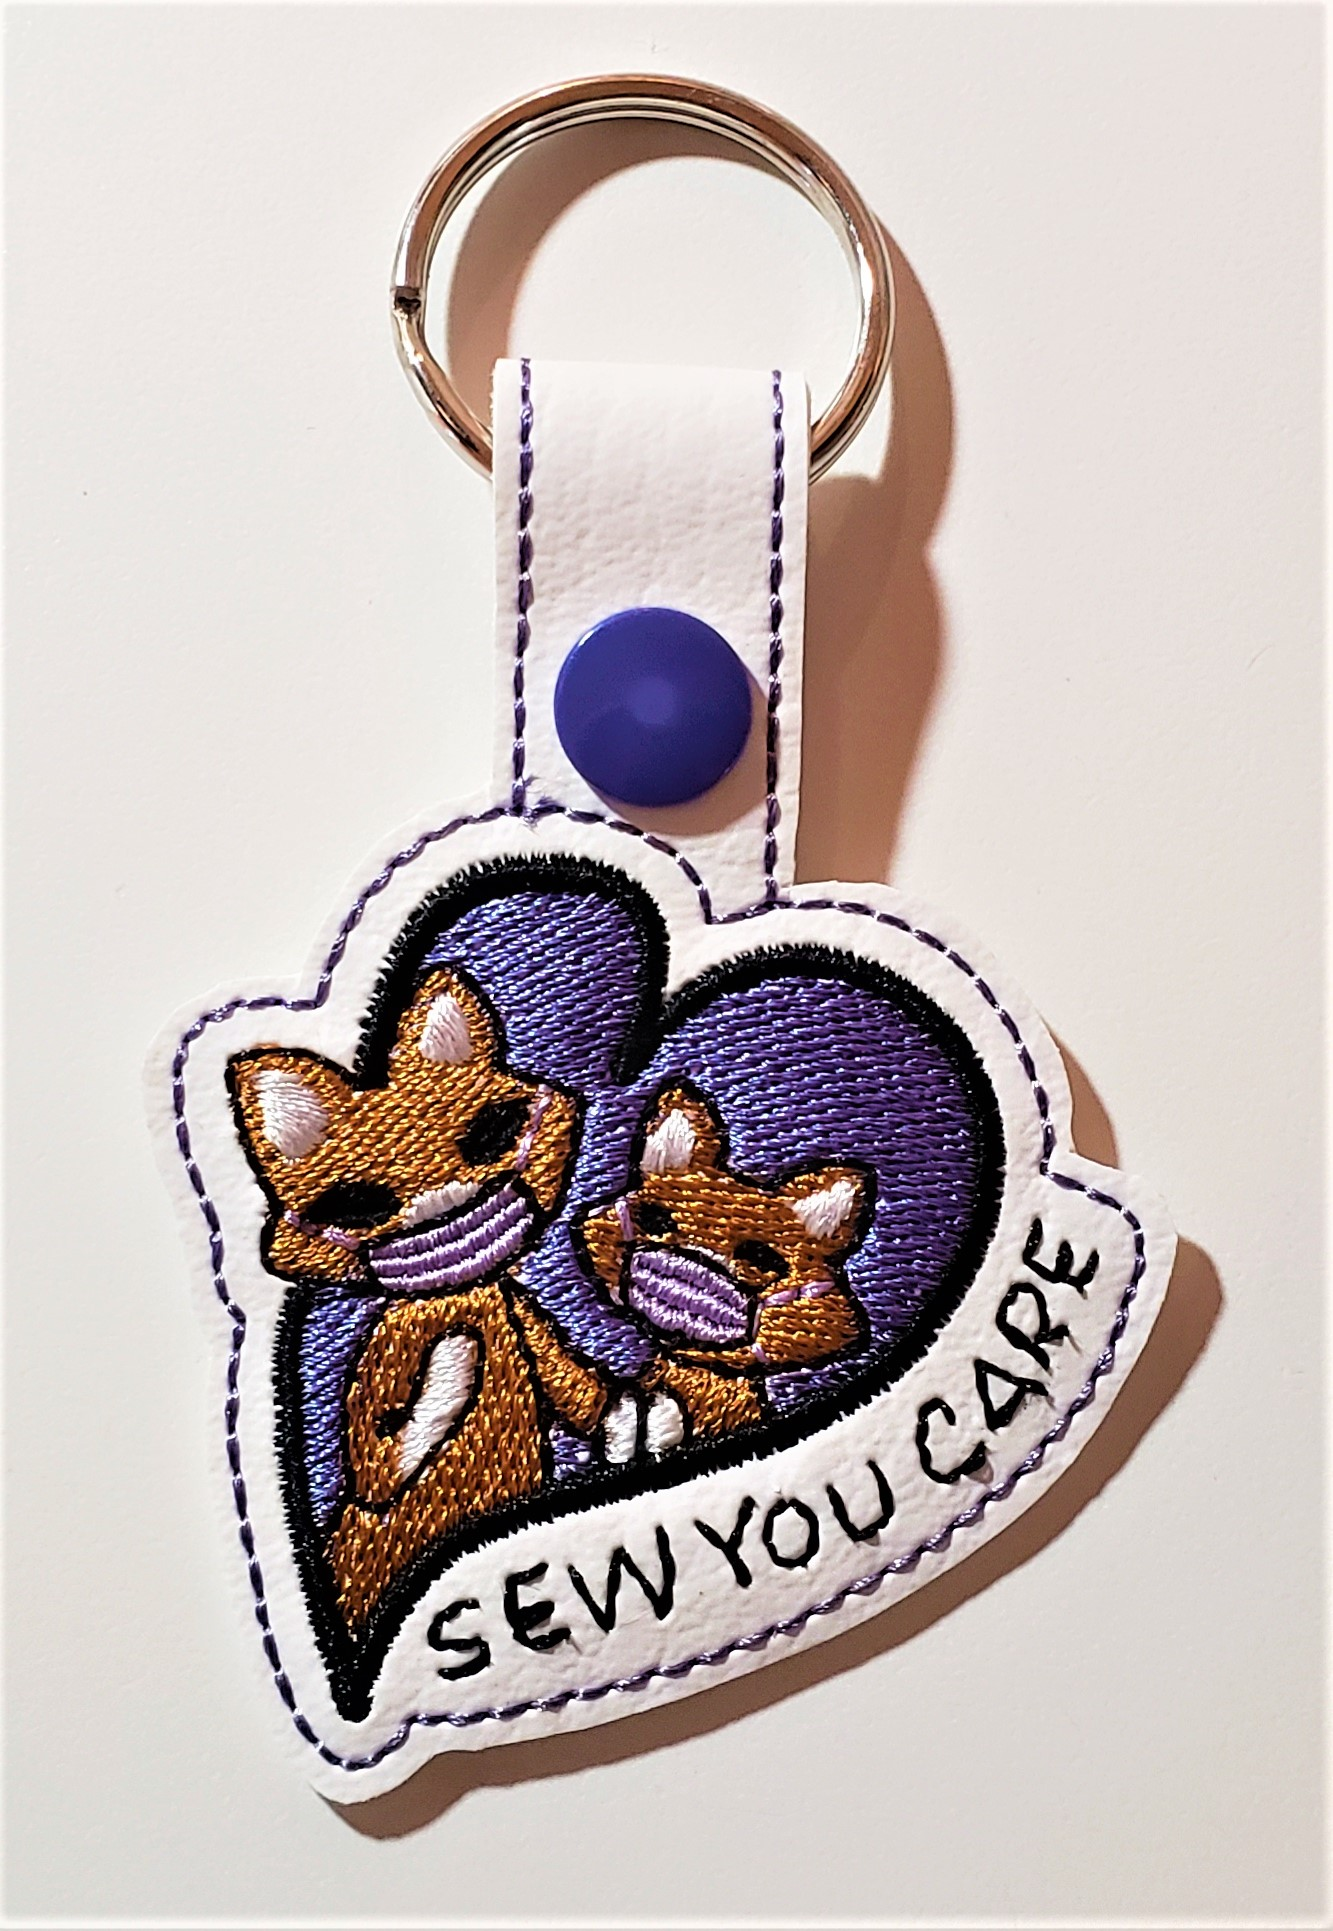 Sew You Care key fob design